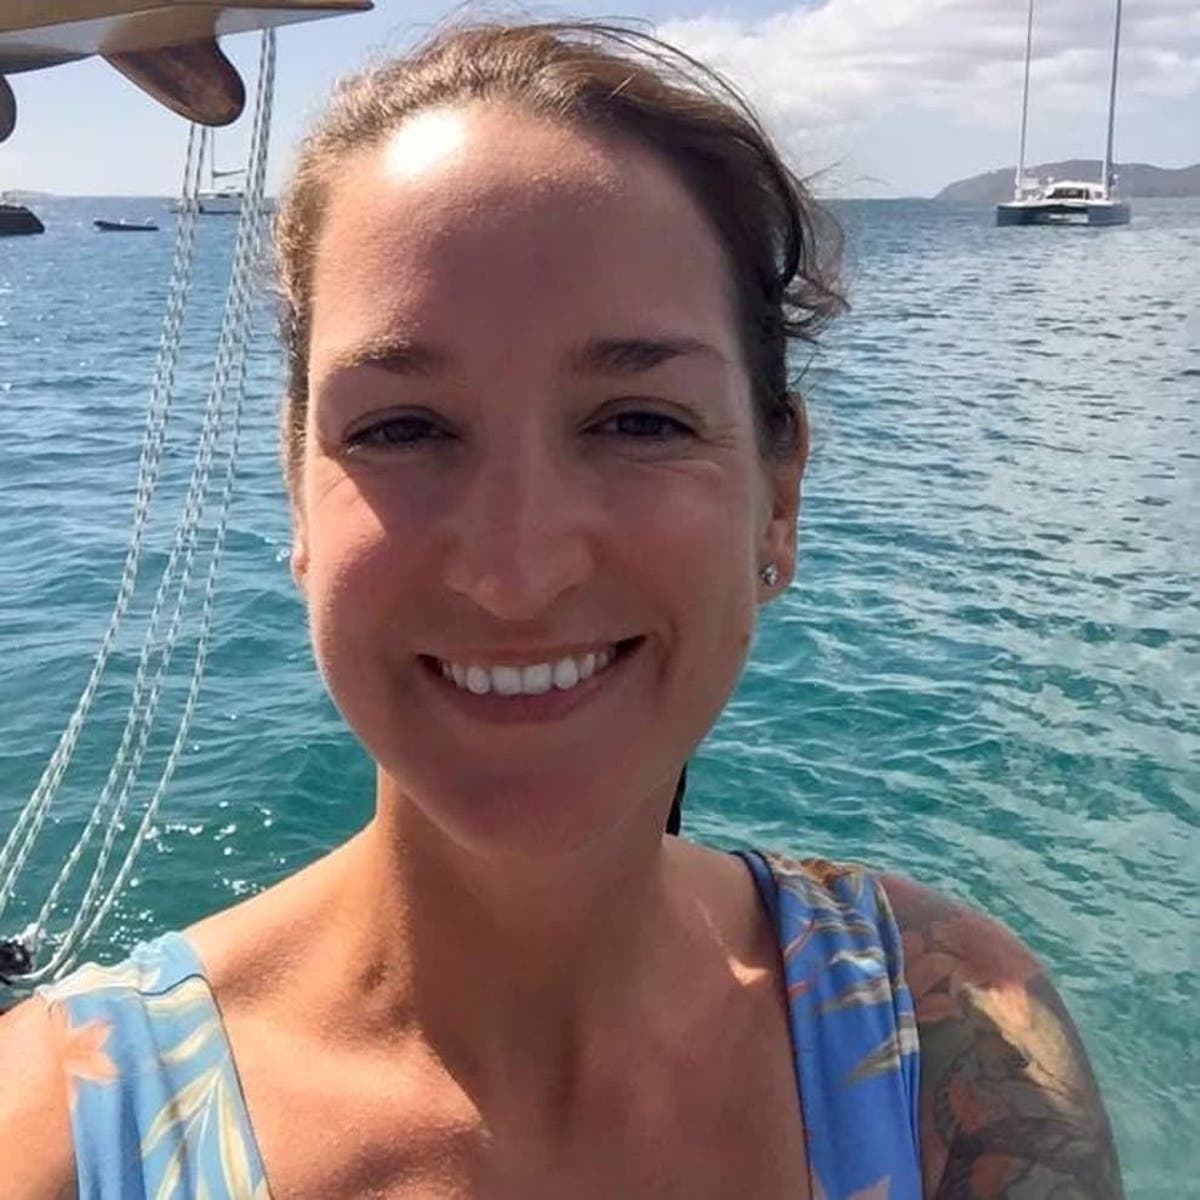 Sarm Heslop: Parents of British woman missing in Caribbean urge forensic search of catamaran